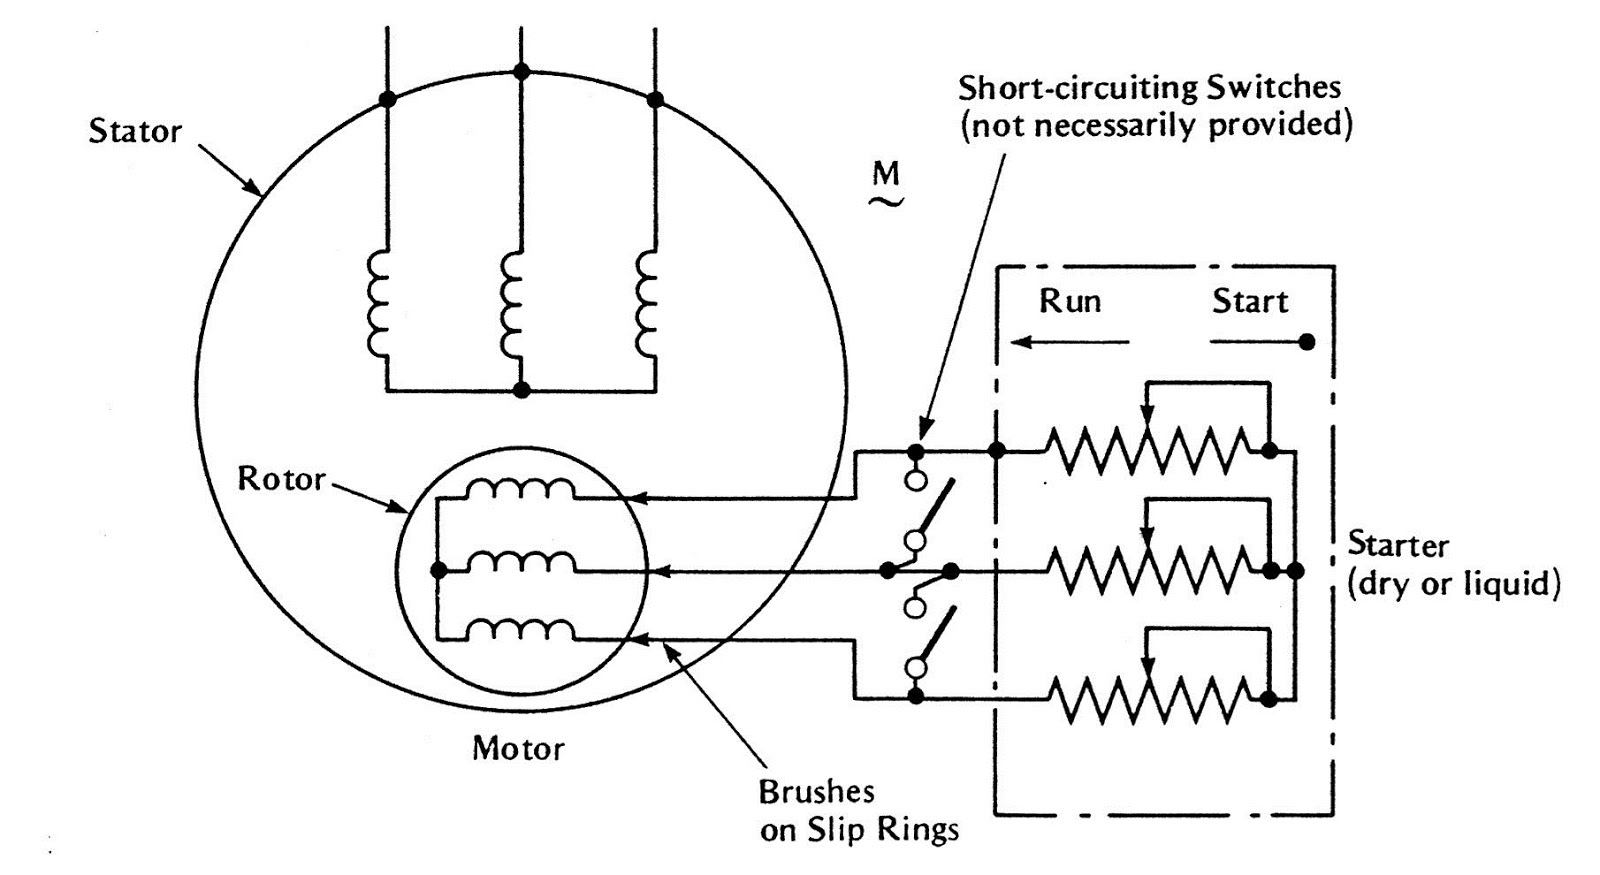 Clarke Single Phase Induction Motor Wiring Diagram 99 F250 Radio Engineering Photos Videos And Articels Search